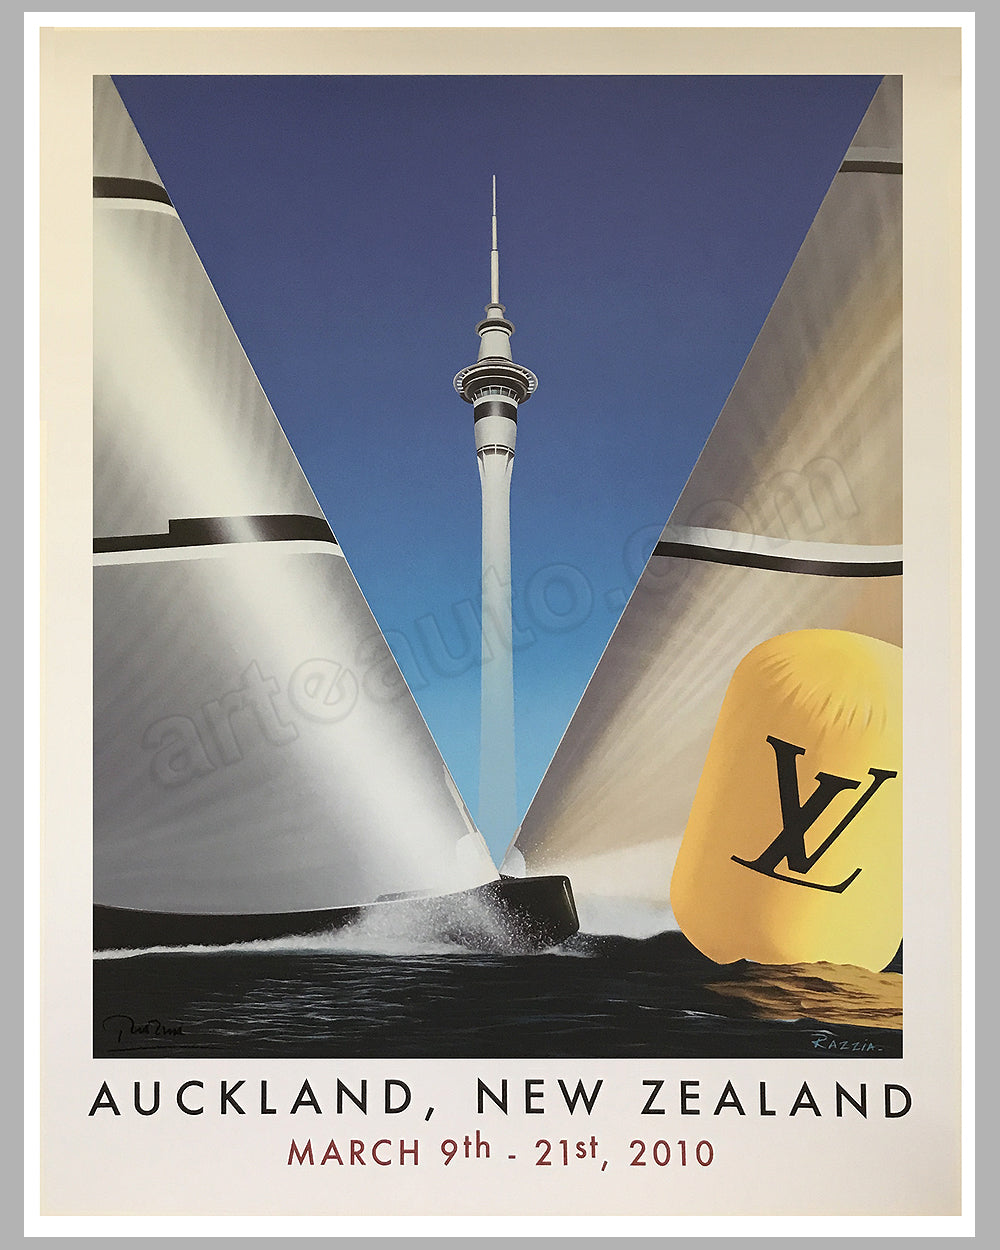 America's Cup 2010 poster by Razzia